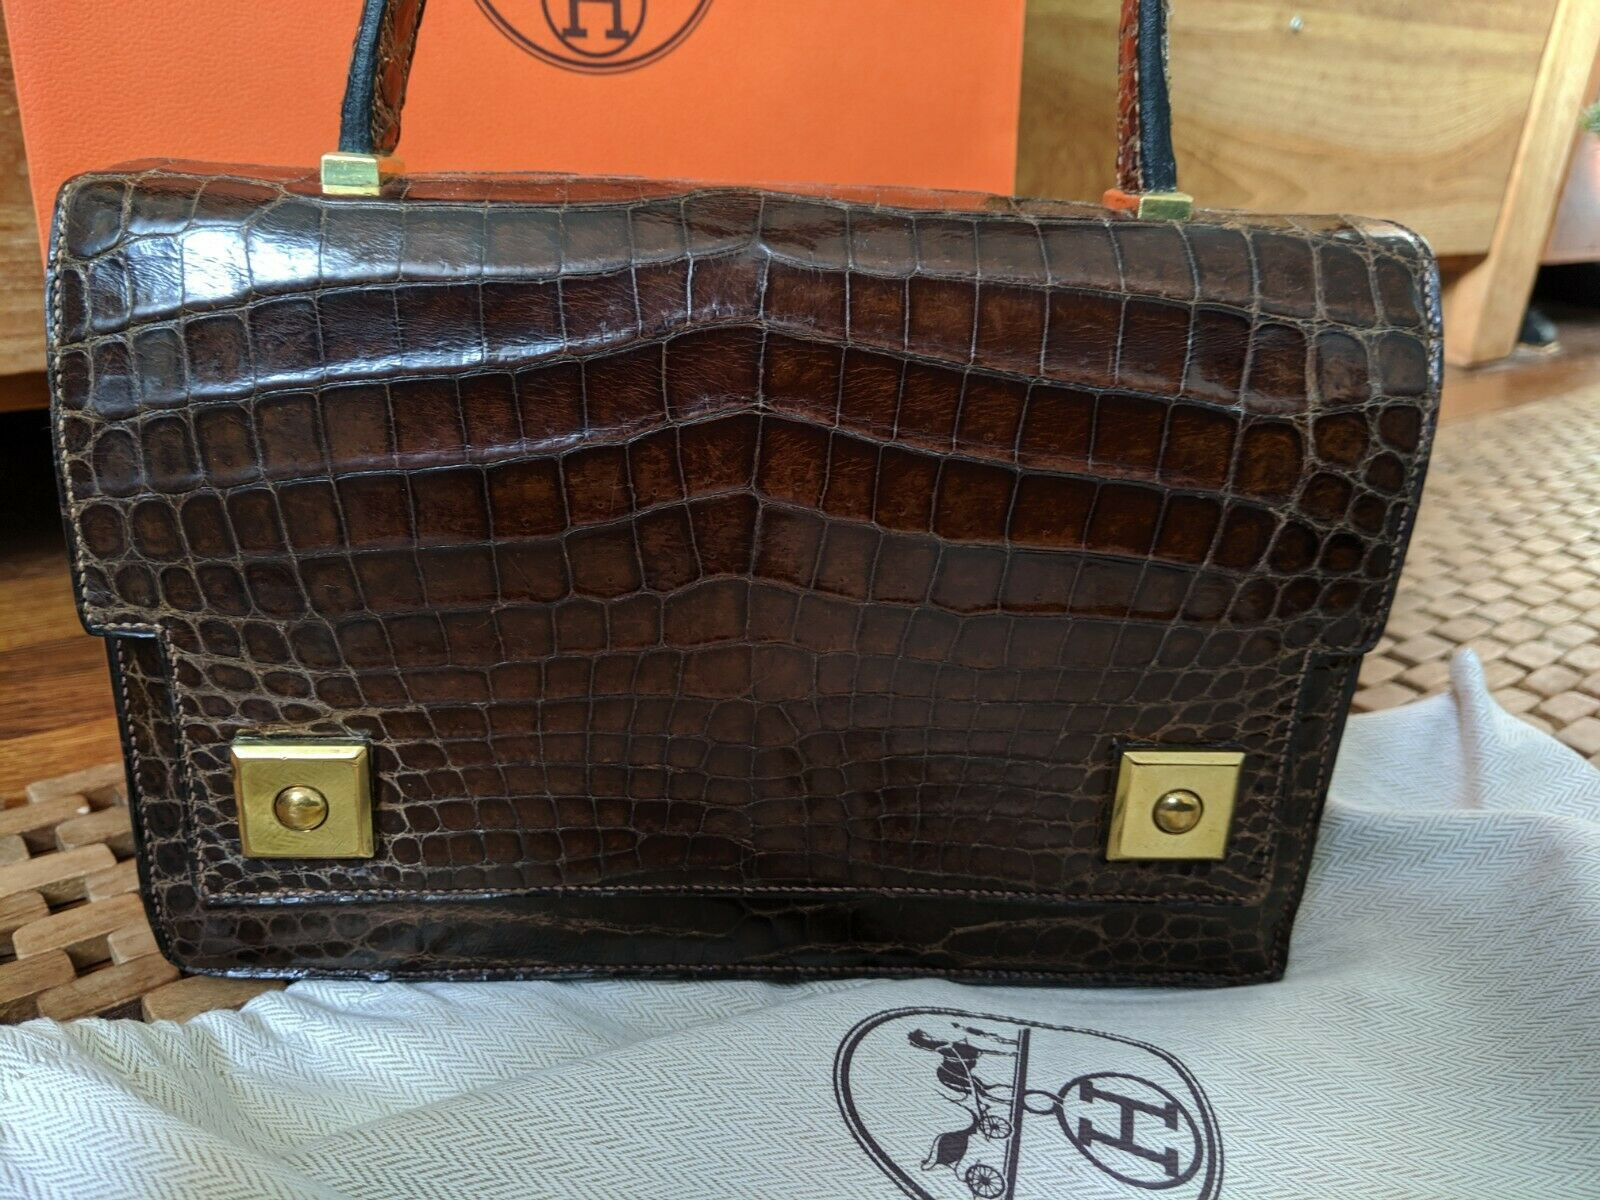 Hermes paris, crocodile, piano, sac, bag